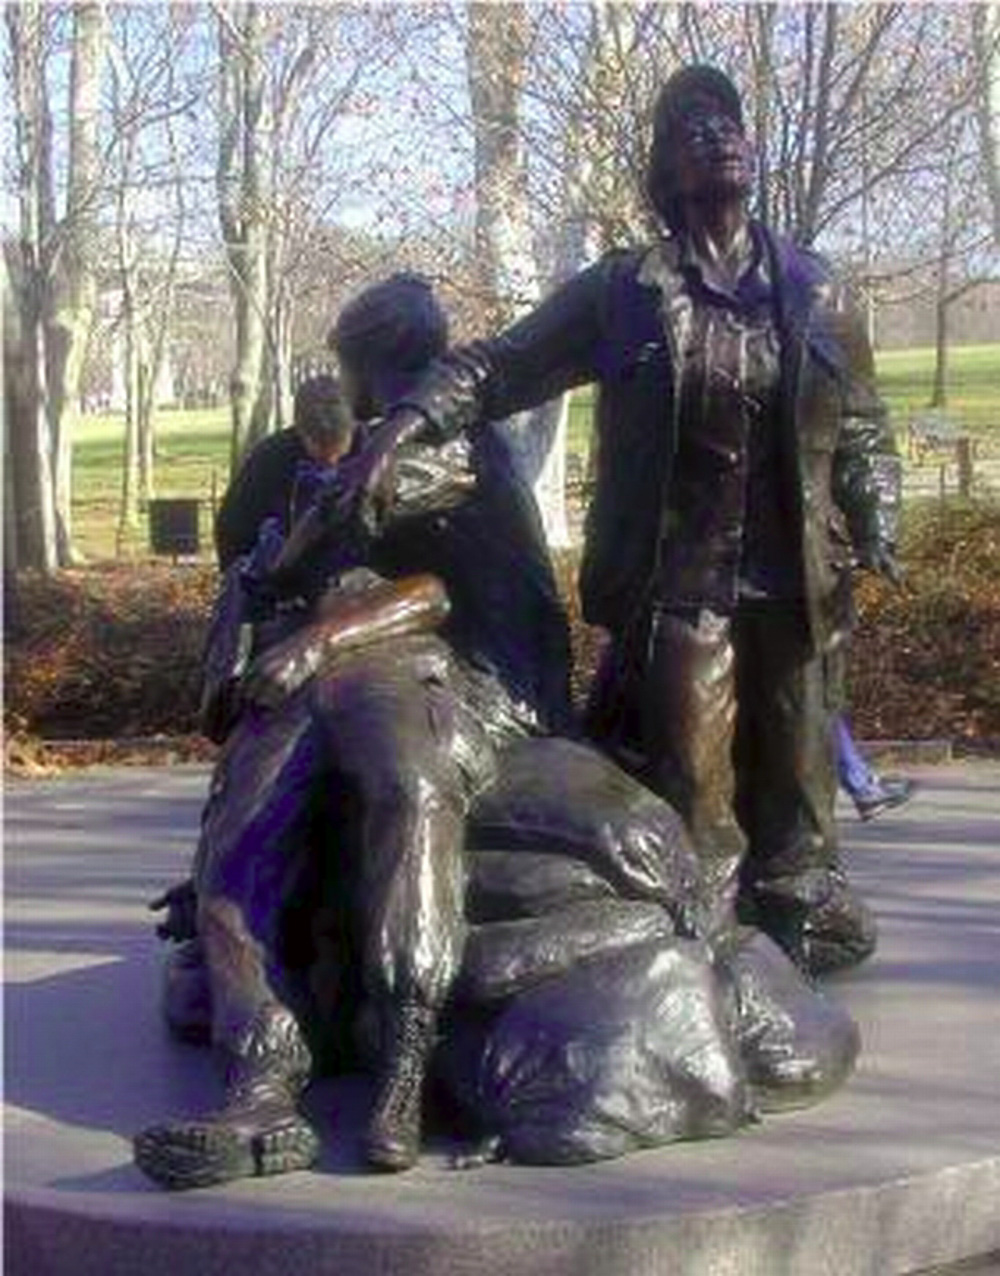 Washington DC, Vietnam War Women's memorial